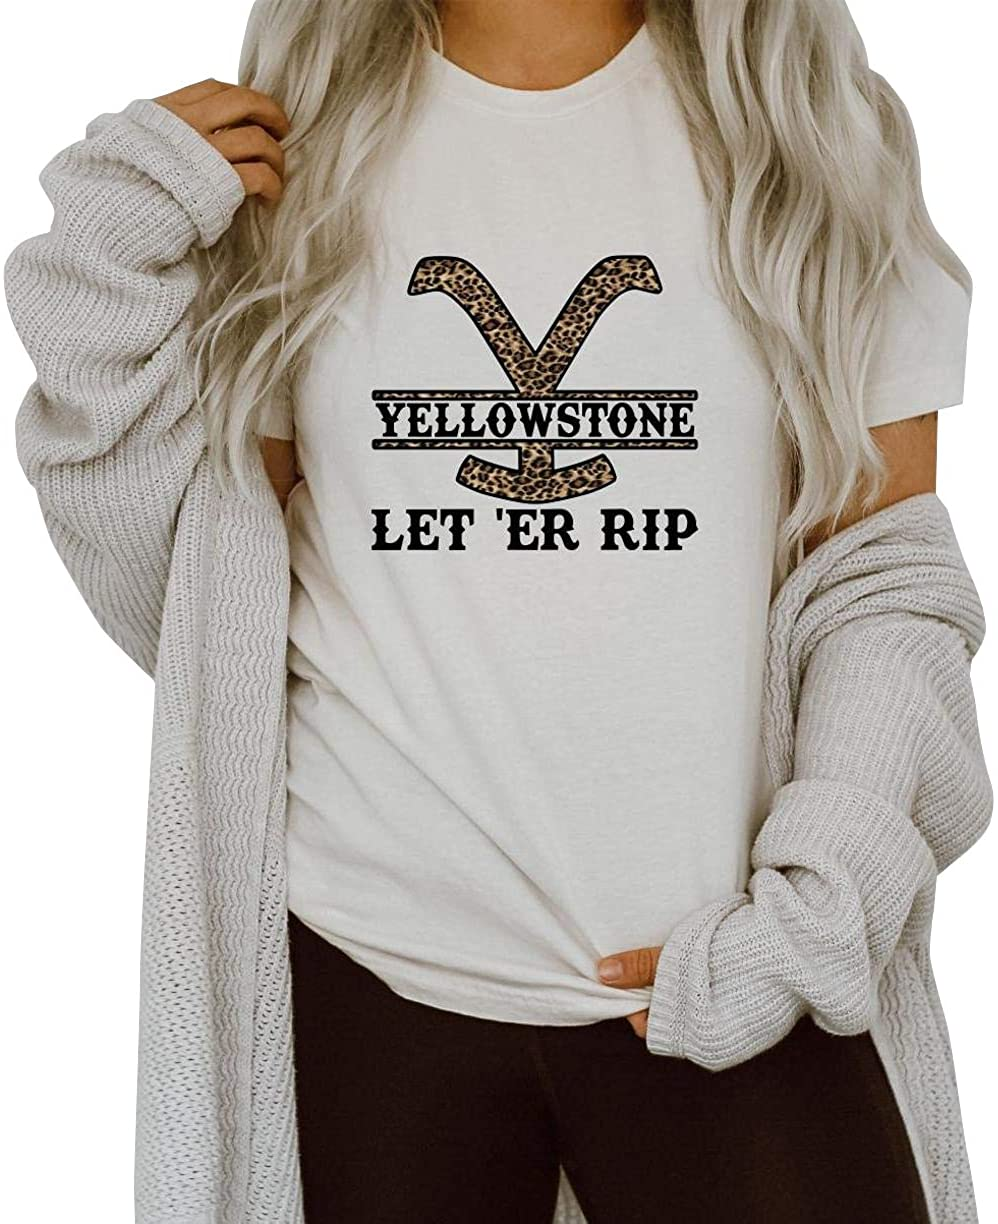 Women Yellowstone Park Shirt Leopard Print Pattern Let Er Rip Country Music Vintage Tee